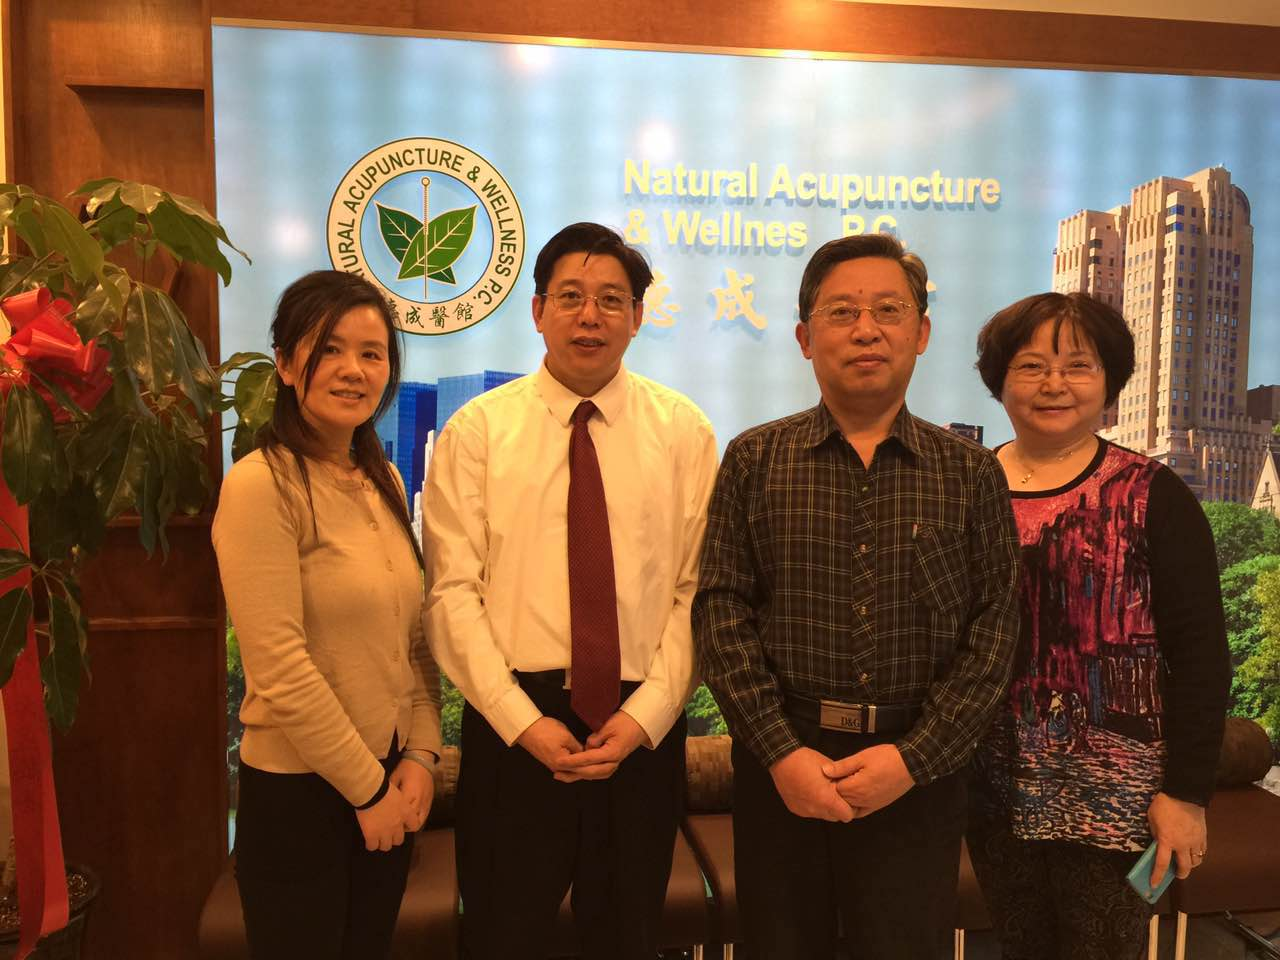 Professor Huang Huang visited Decheng Medical Center on March 25, 2015